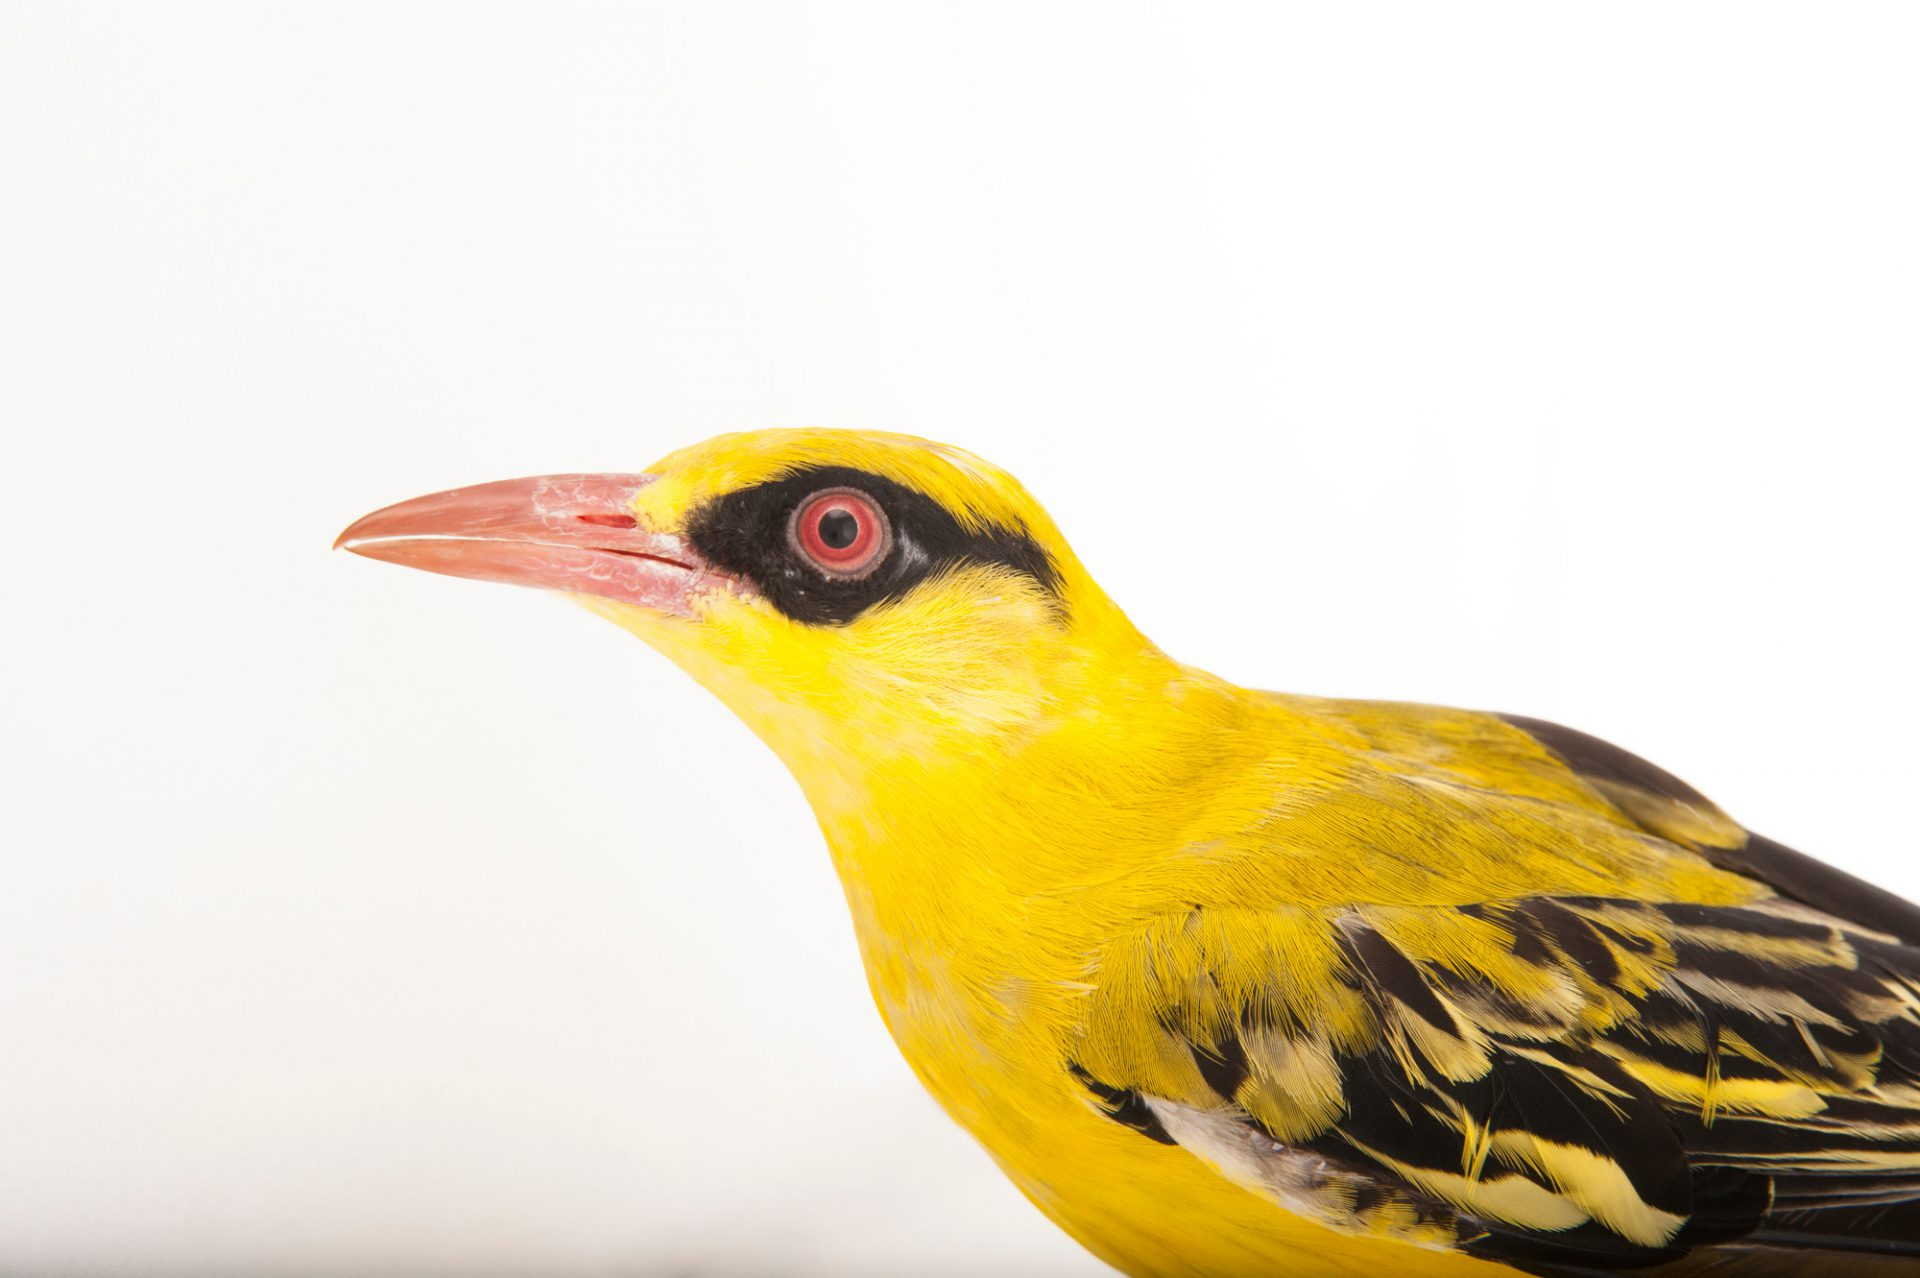 An African golden oriole (Oriolus auratus) at the Columbus Zoo.